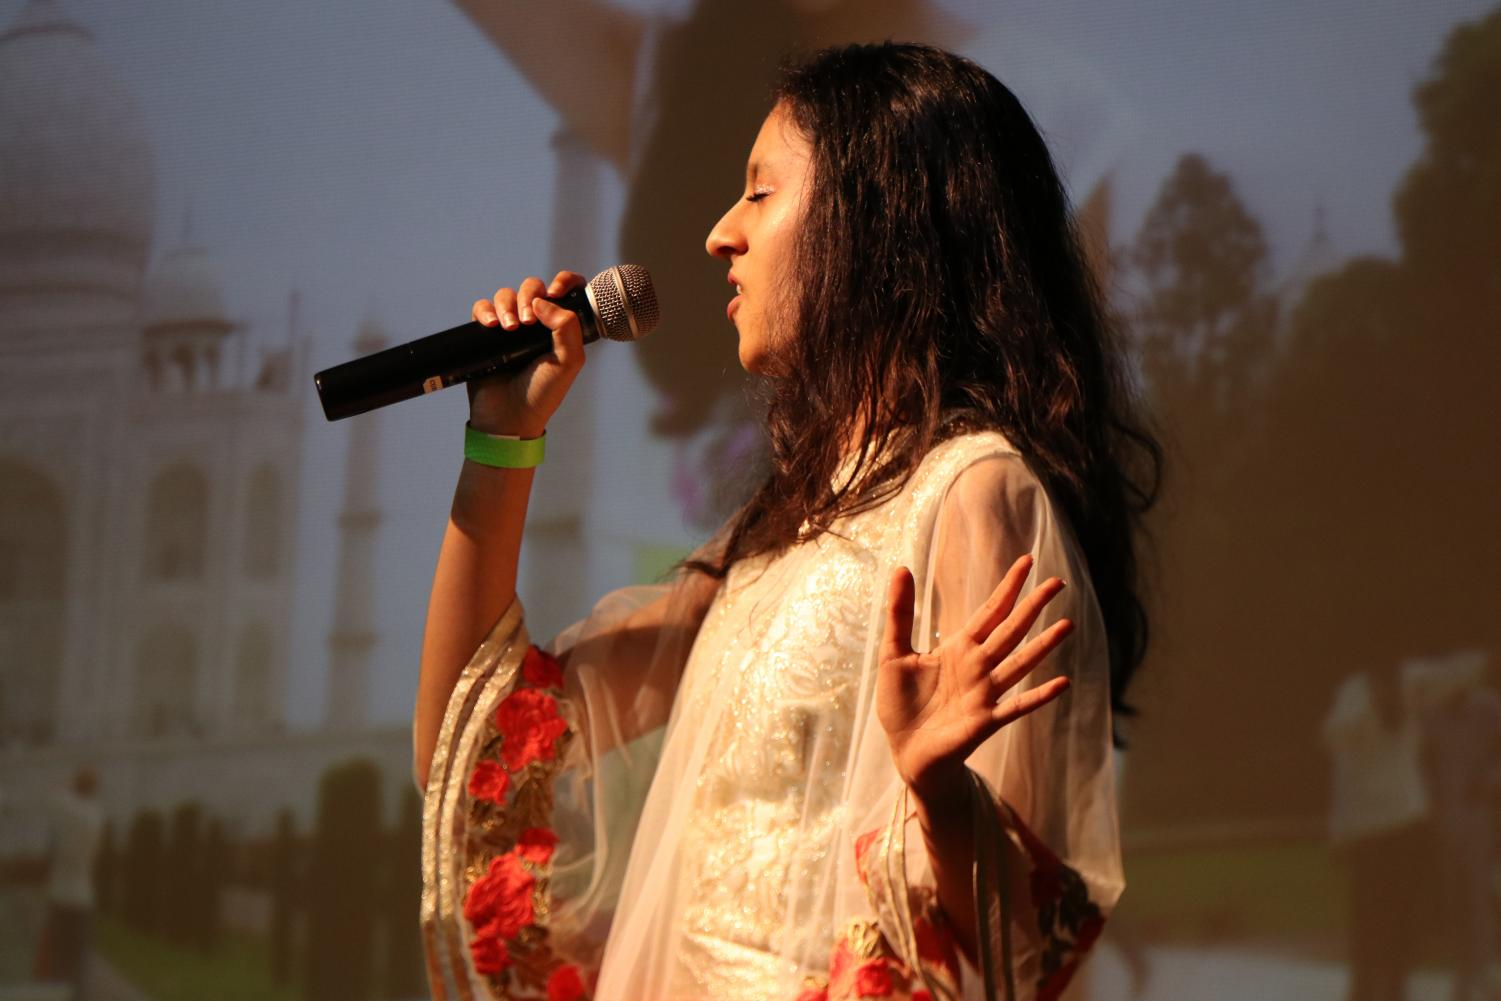 Sejal+Jain+%2720+sings+a+song+in+26+different+languages.